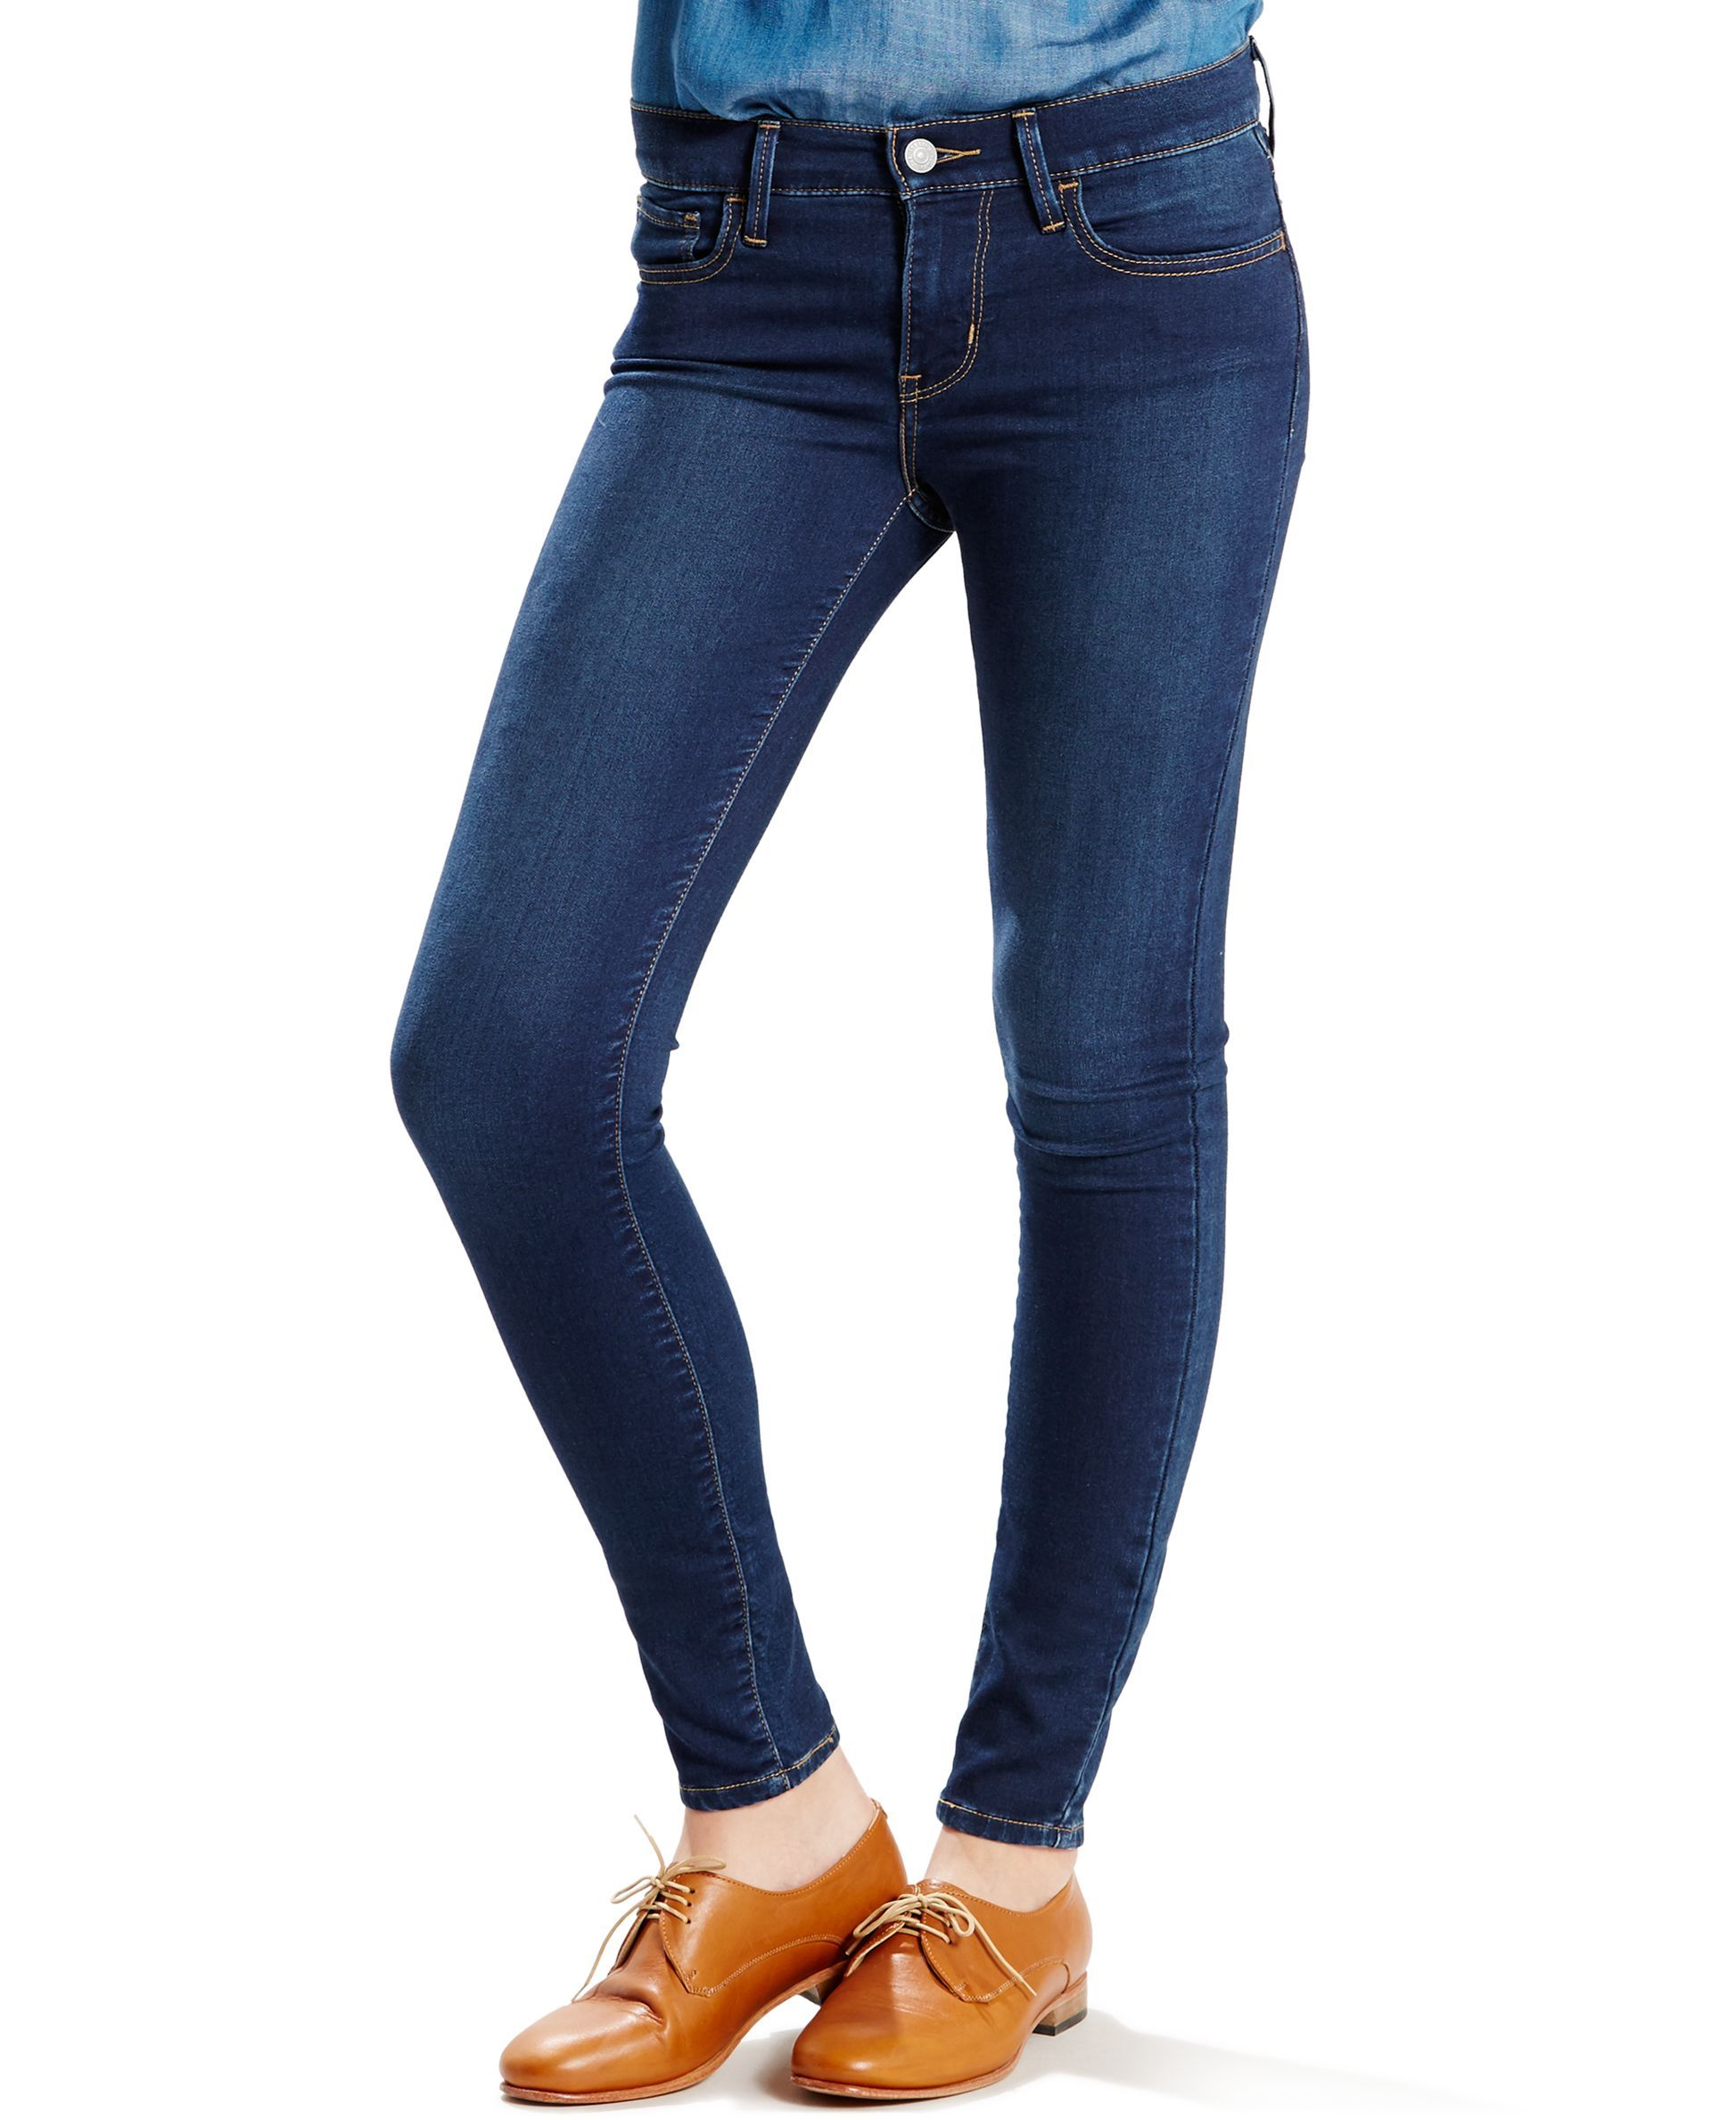 d9660fe94 Levi's 710 Super Skinny Jeans | Clothes shopping | Super skinny ...